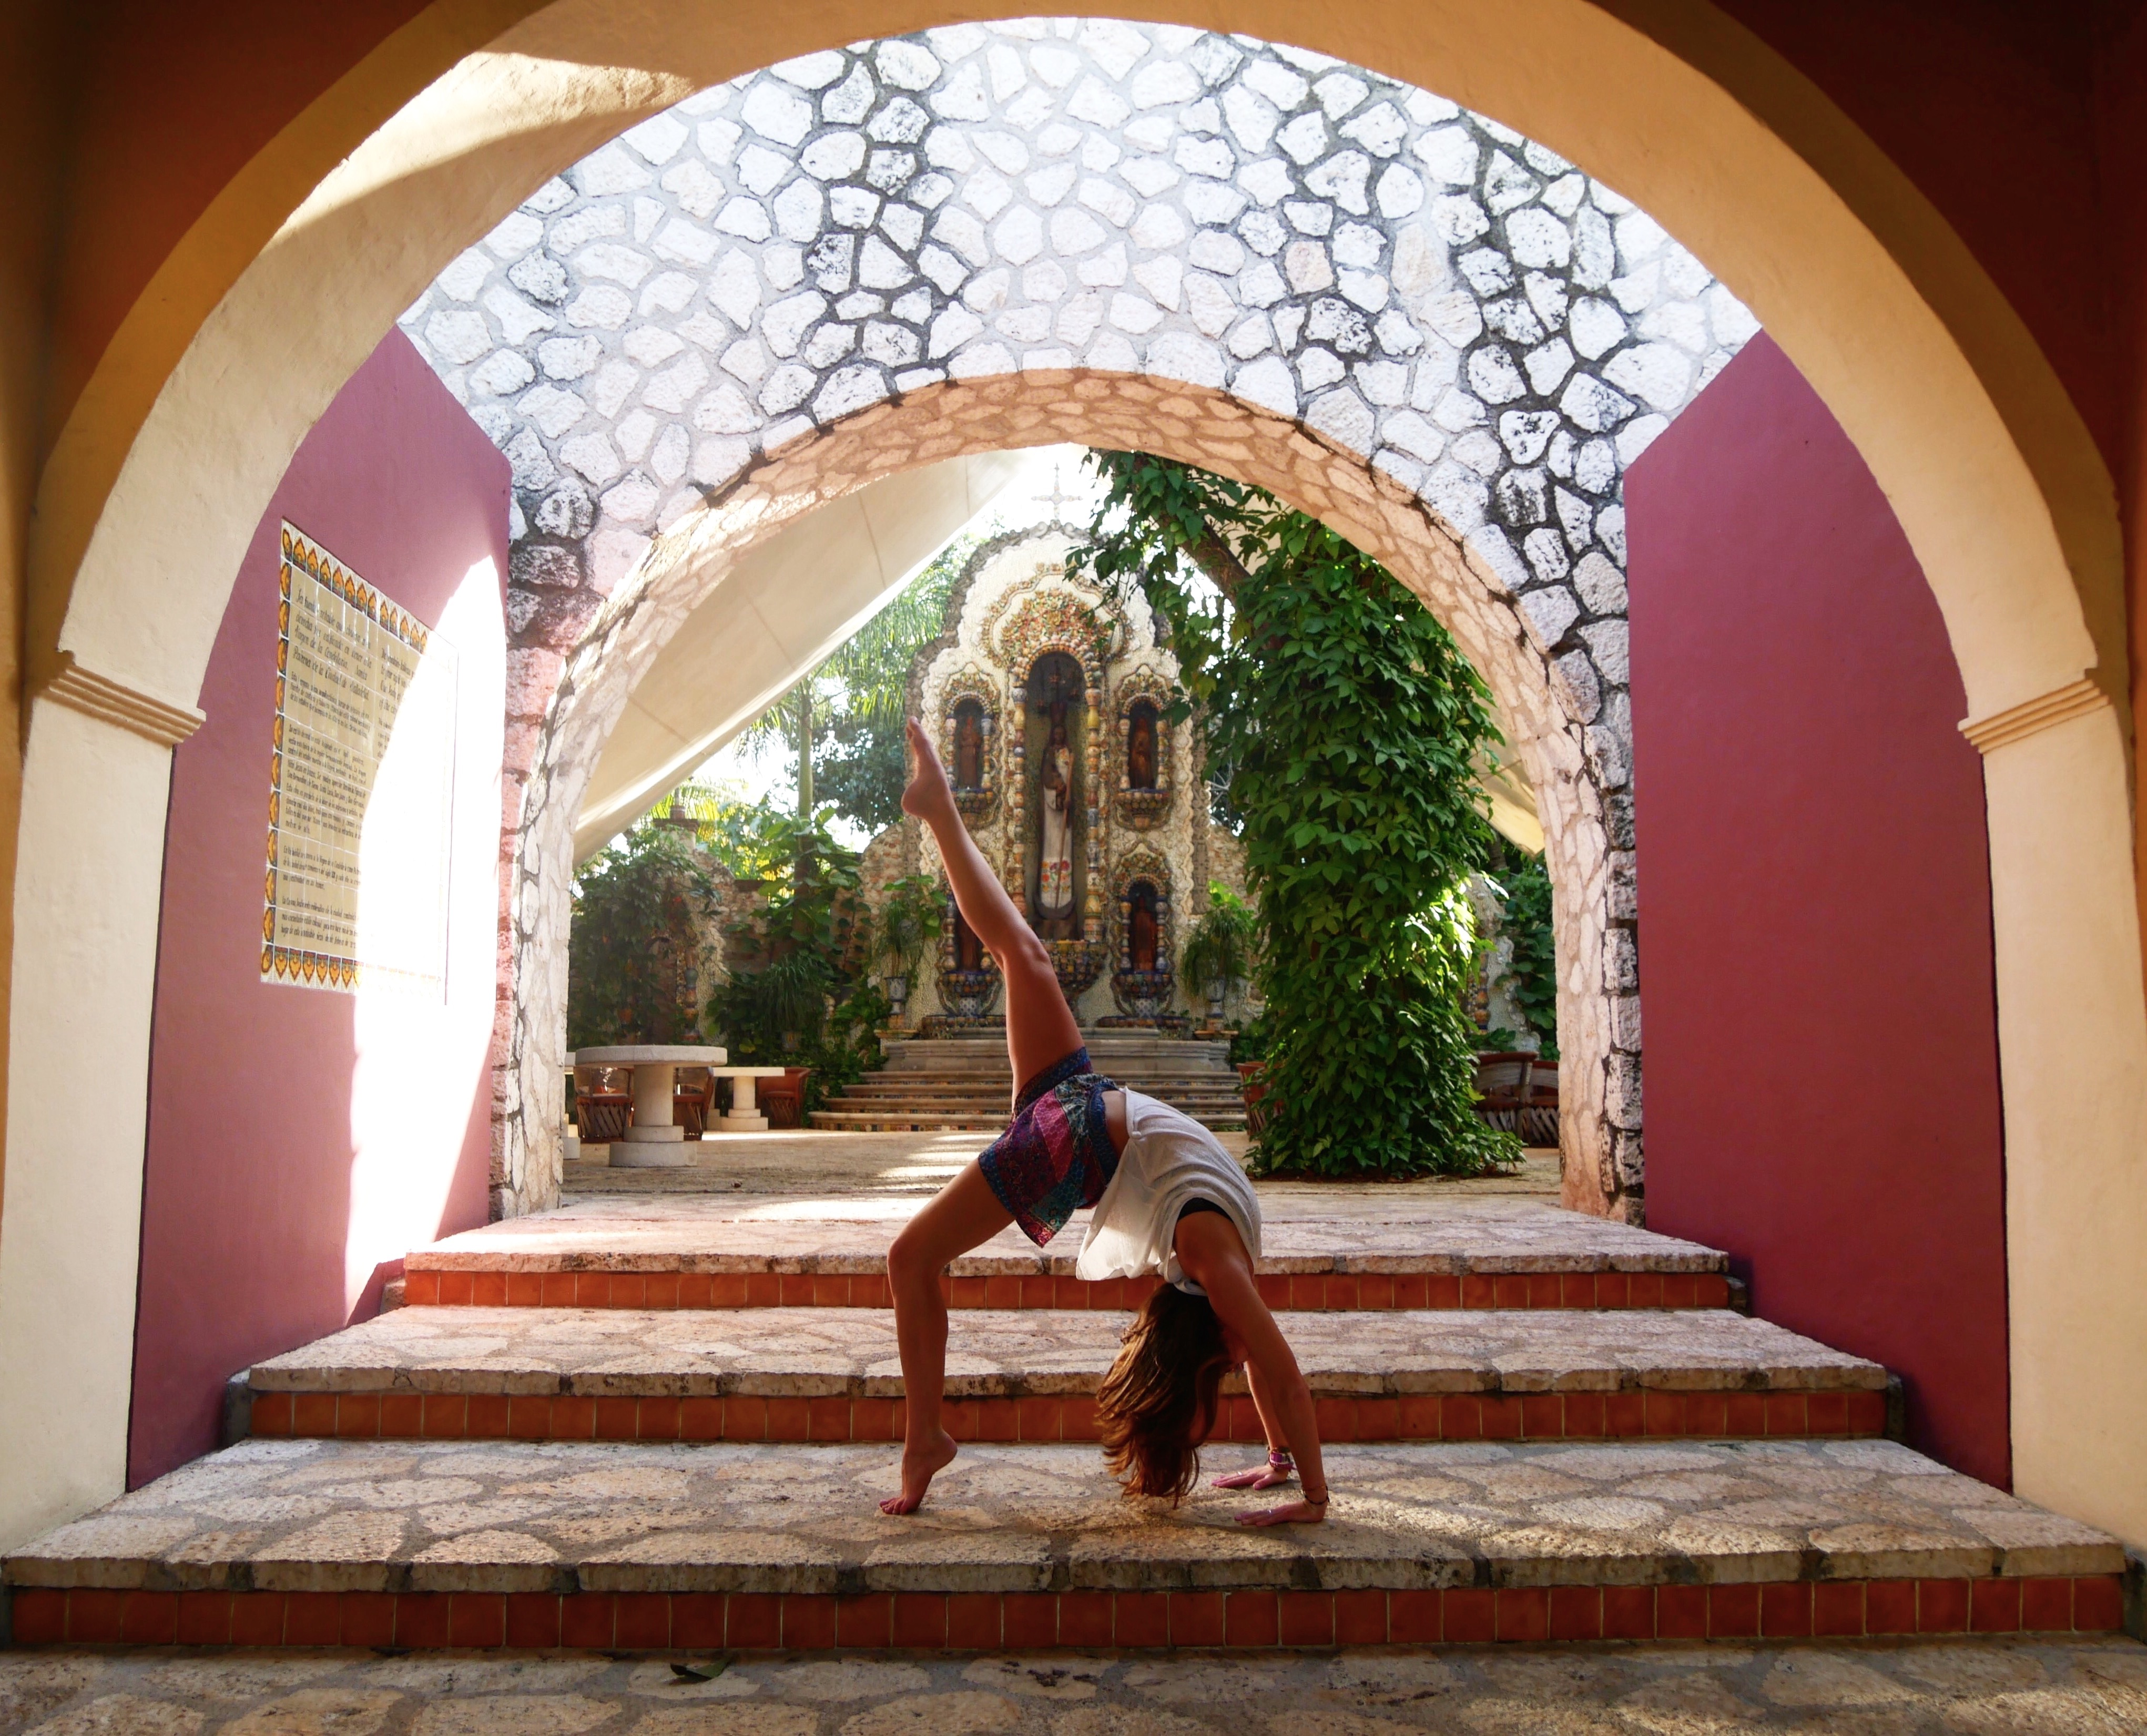 Wheel pose one leg lifted in Mexico